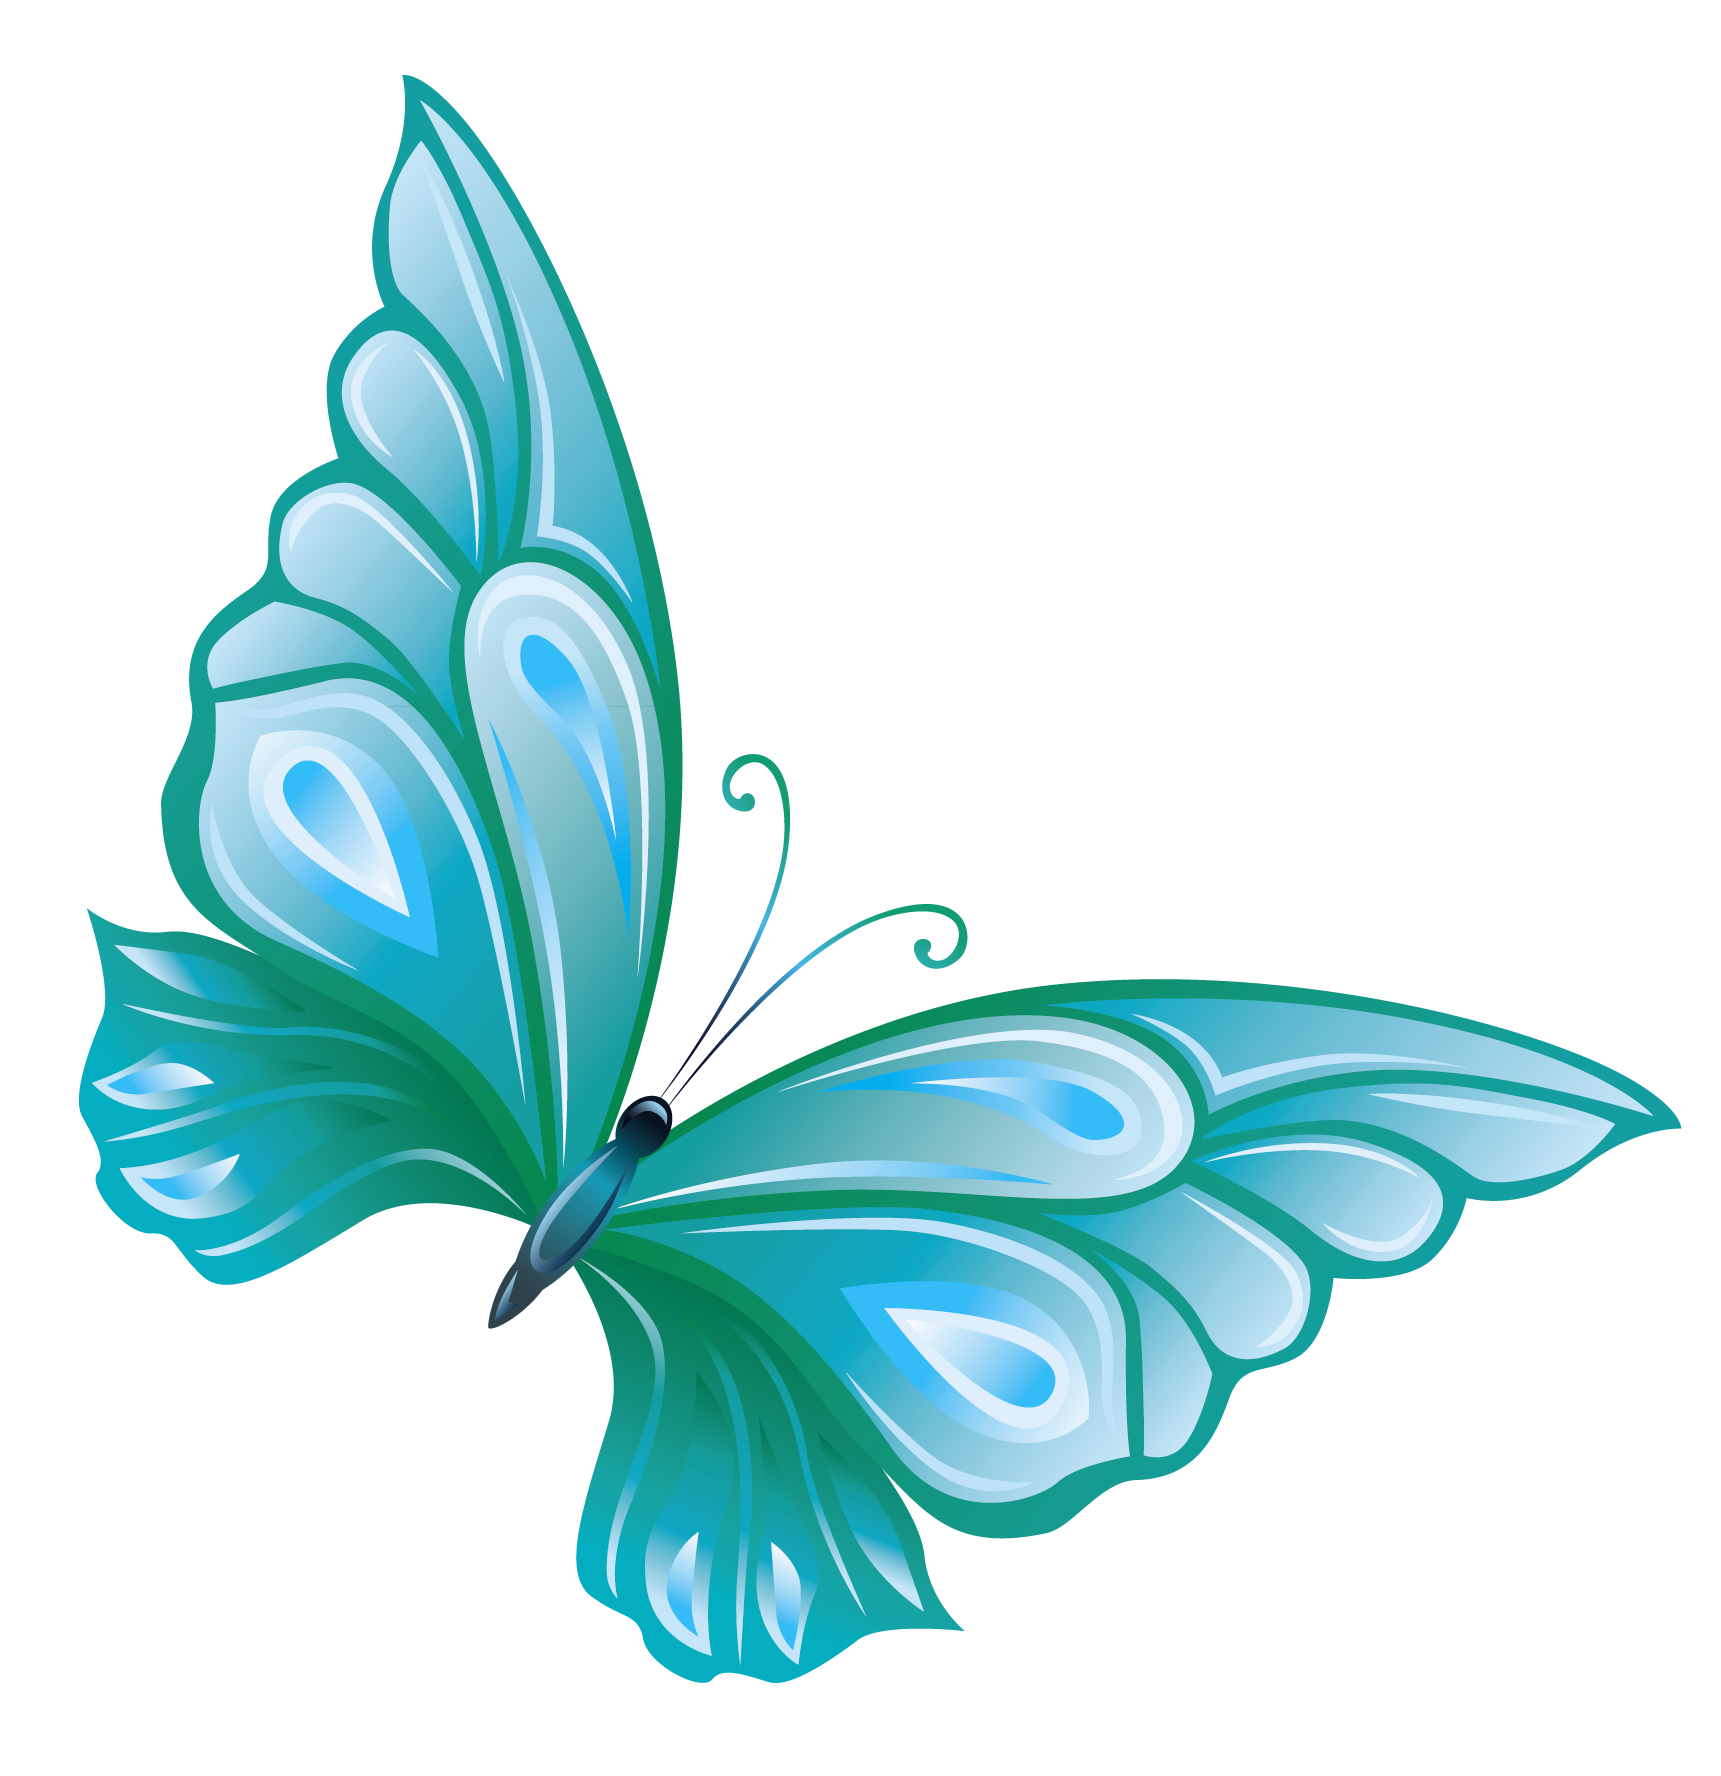 1 clipart transparent background.  collection of teal